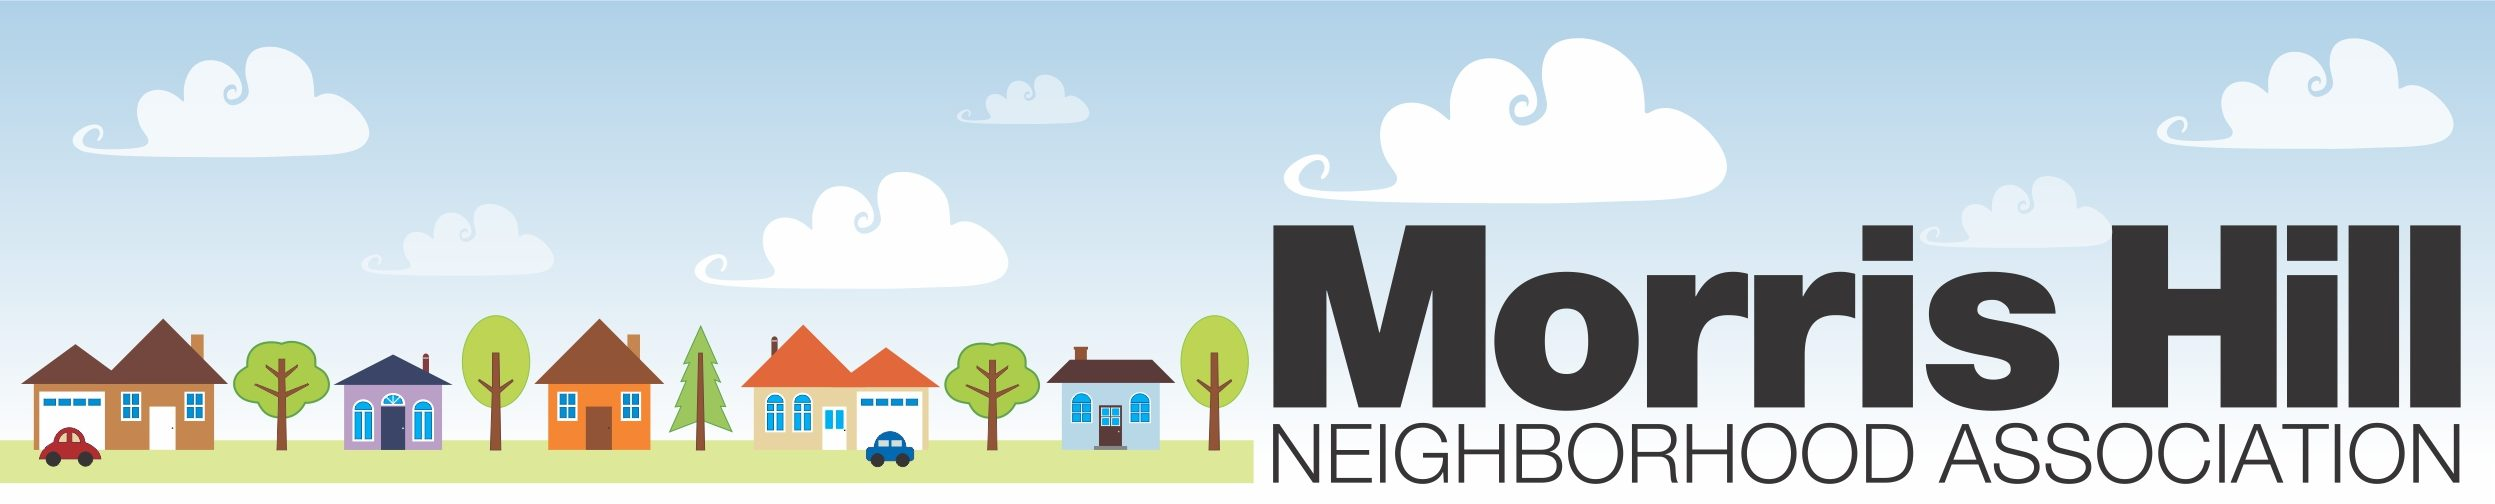 Morris Hill Neighborhood Association